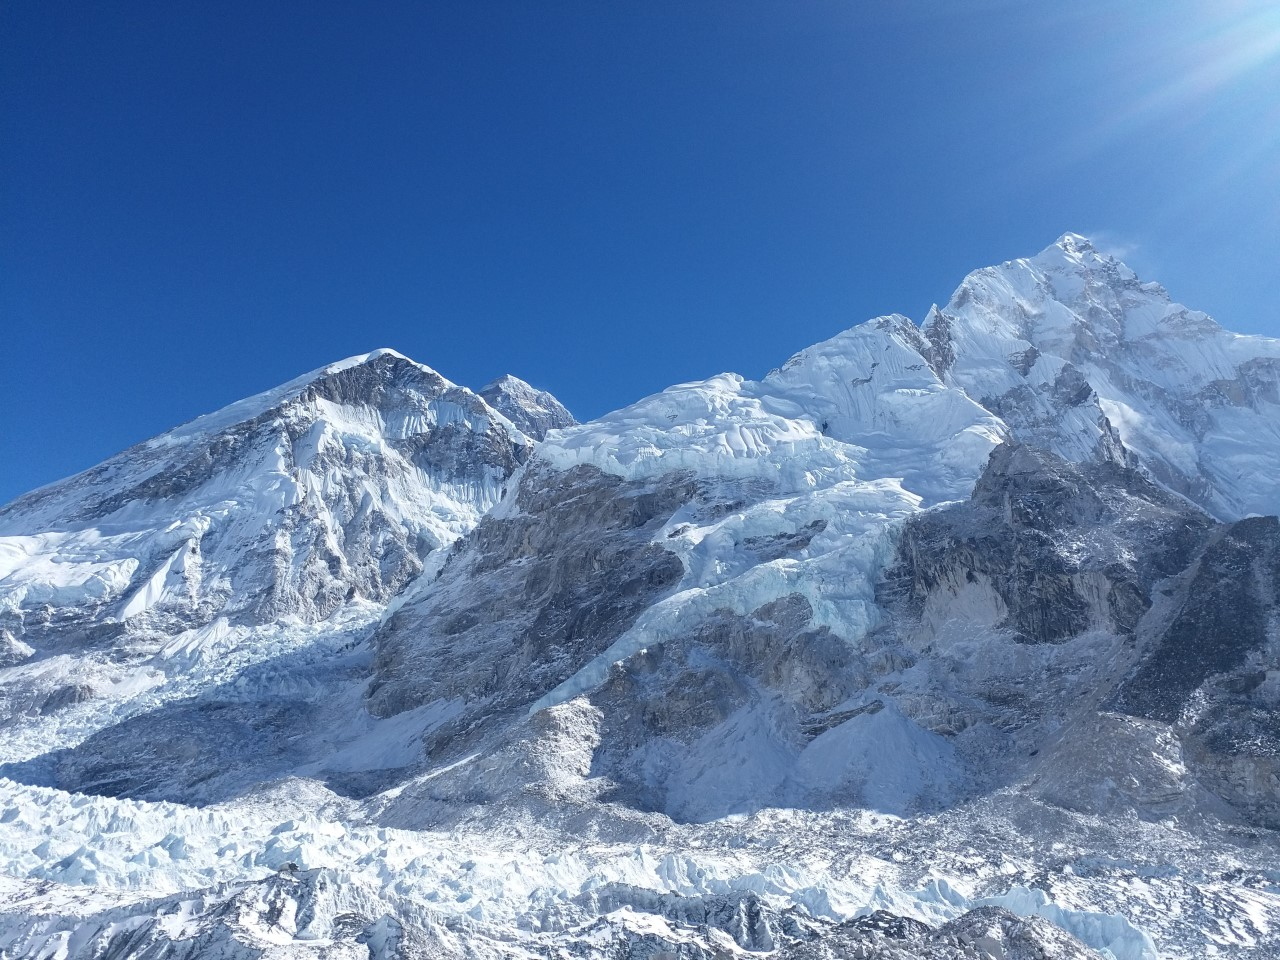 facts of Mount Everest